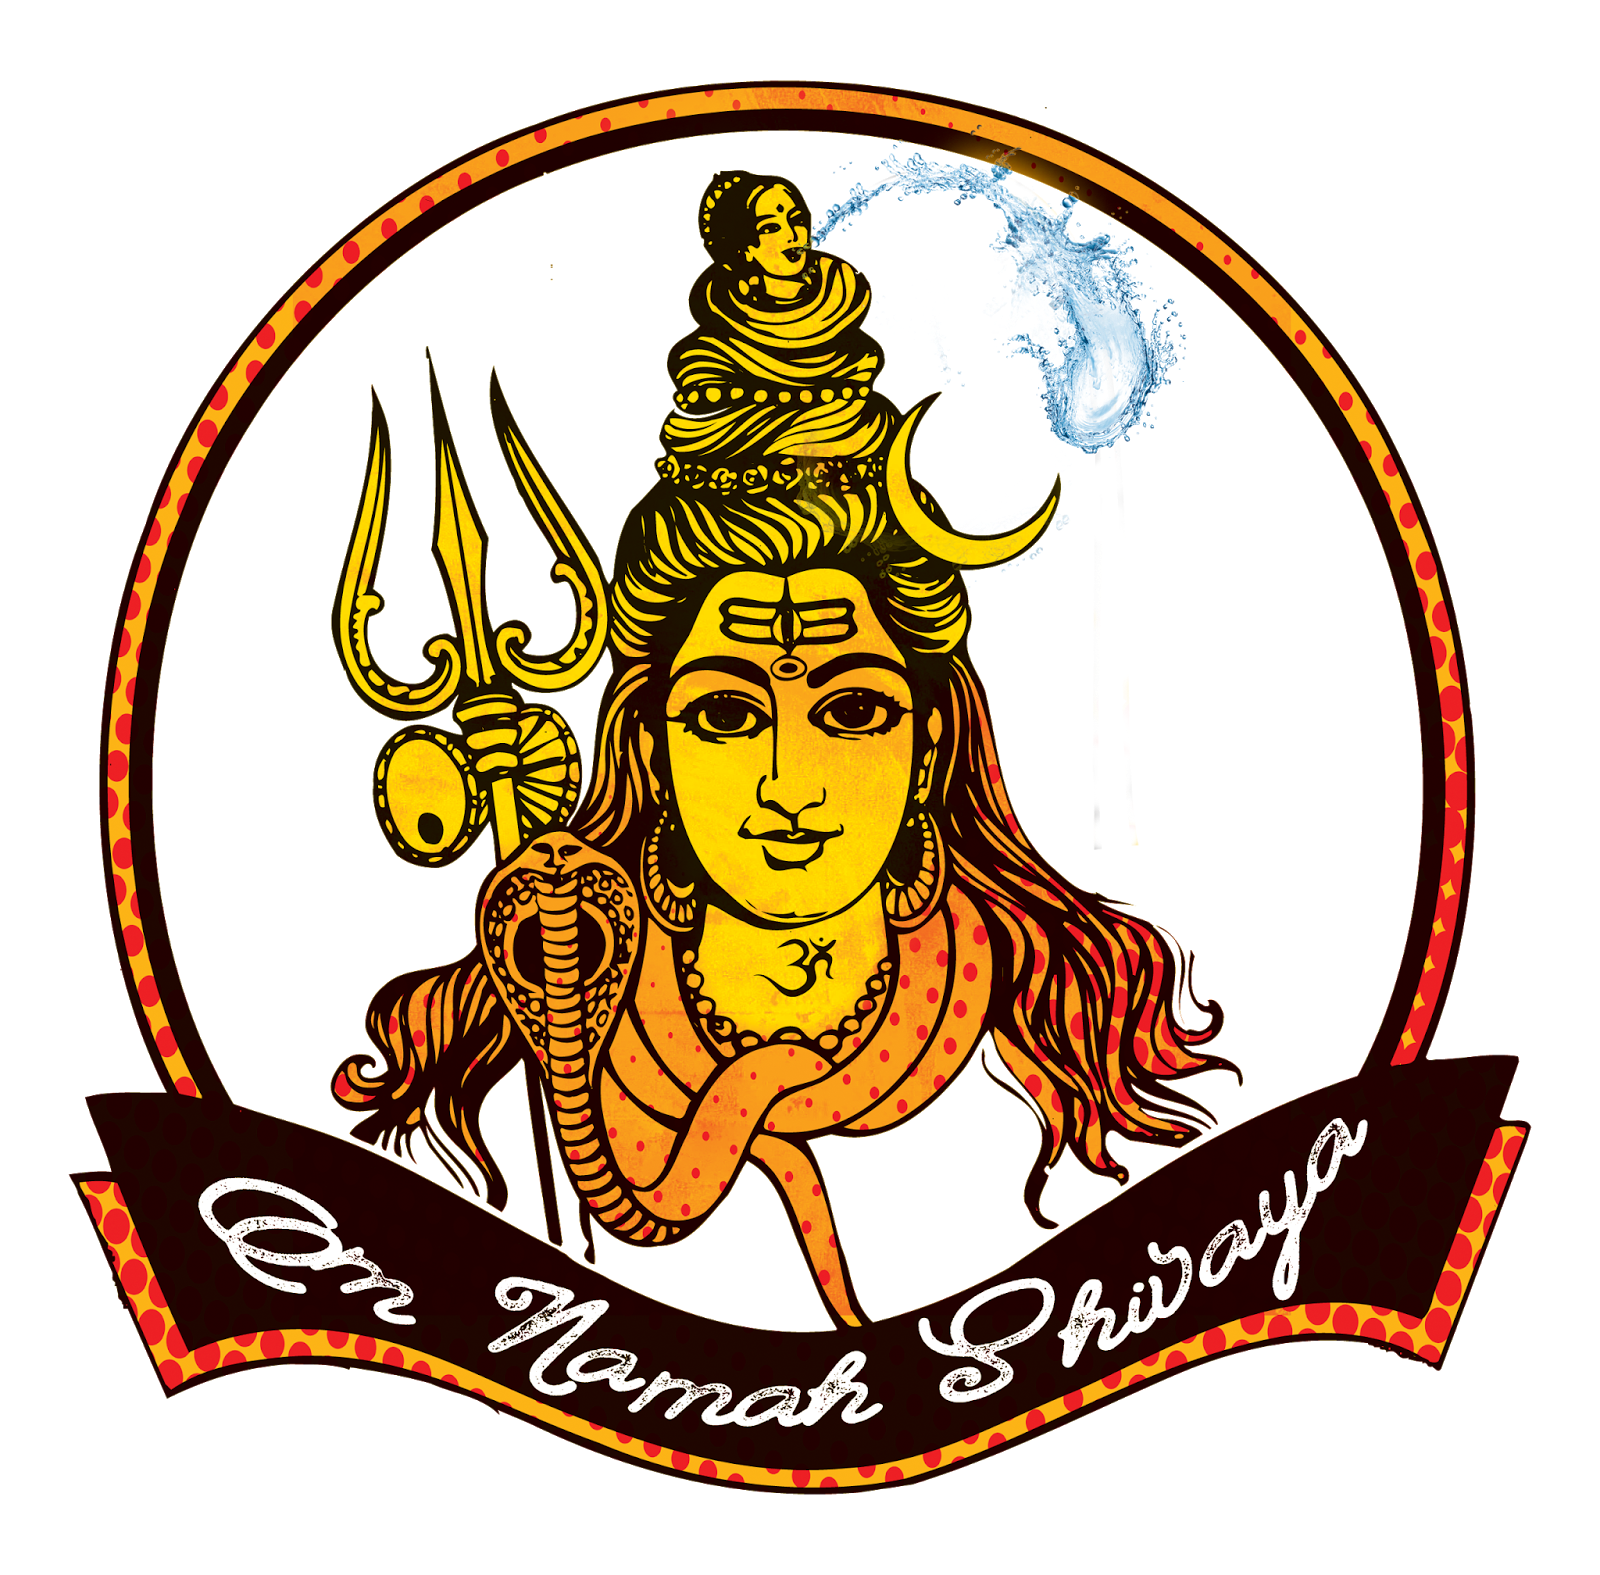 Lord Shiva Png Clipart Image Transparent-Lord shiva Png Clipart image transparent, Lord Ganga devi Transparent image  png-17